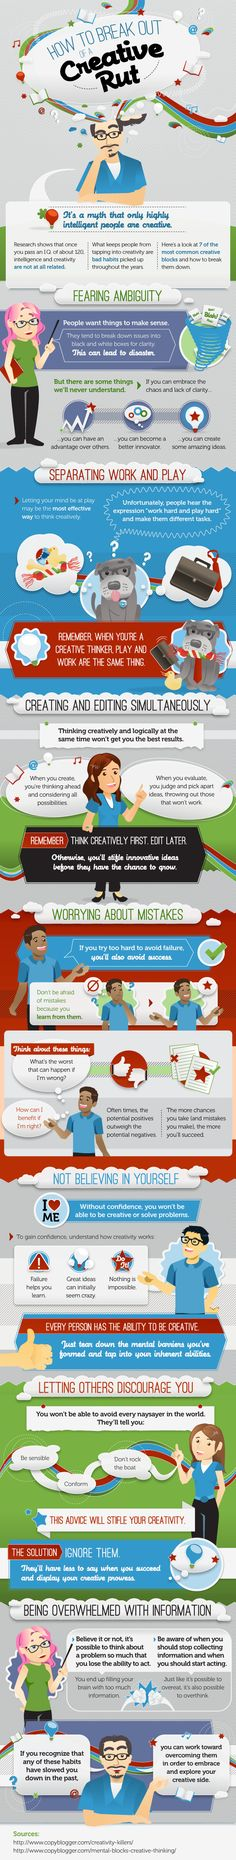 How To Break Out The Creative Rut #infographic #creativity #socialmedia #in